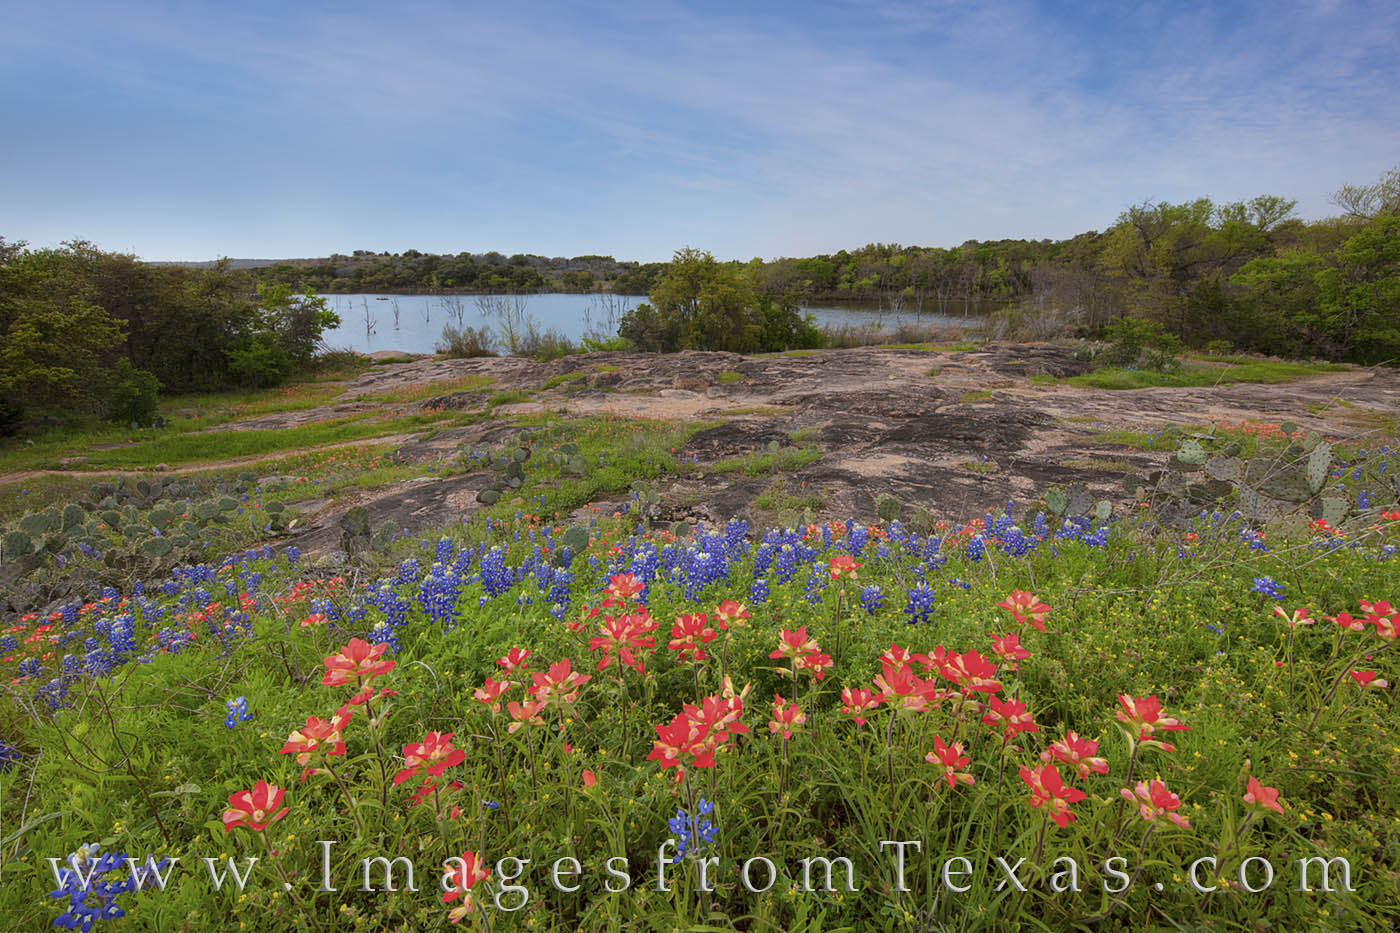 indian paintbrush, bluebonnets, wildflowers, texas wildflowers, inks lake state park, inks lake, afternoon, hill country, texas drives, photo